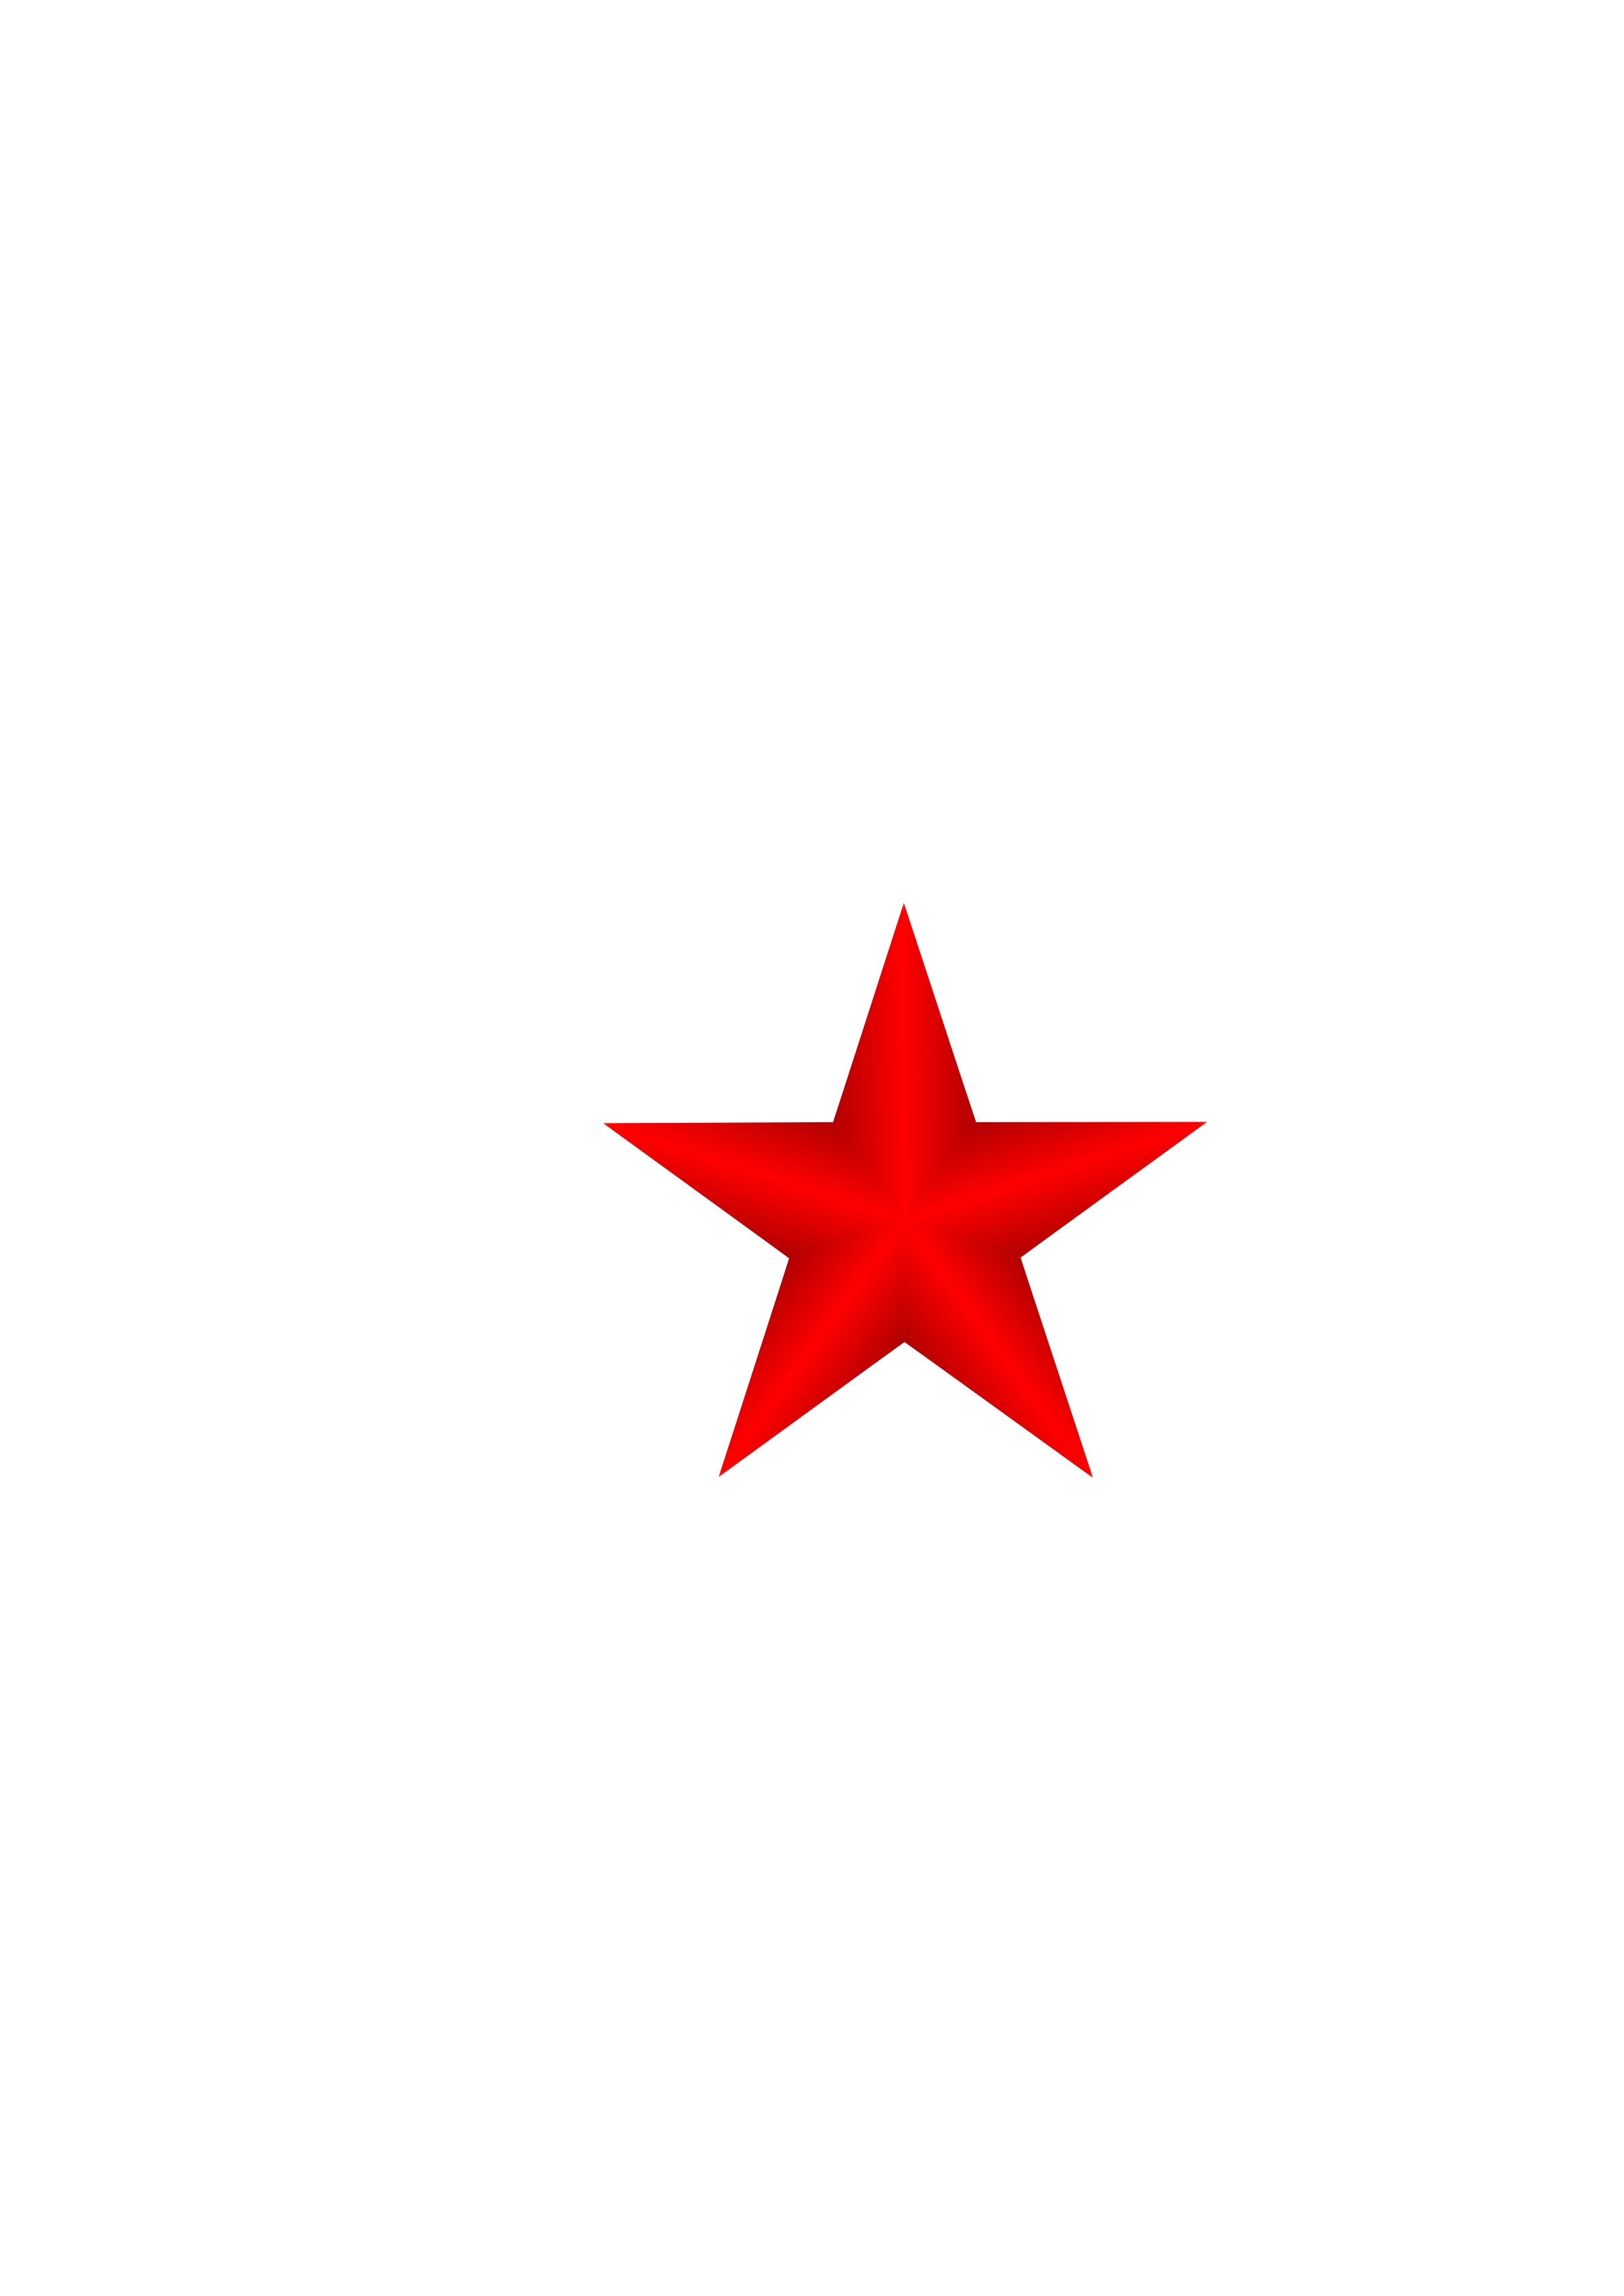 Red Star by f_featherbrain